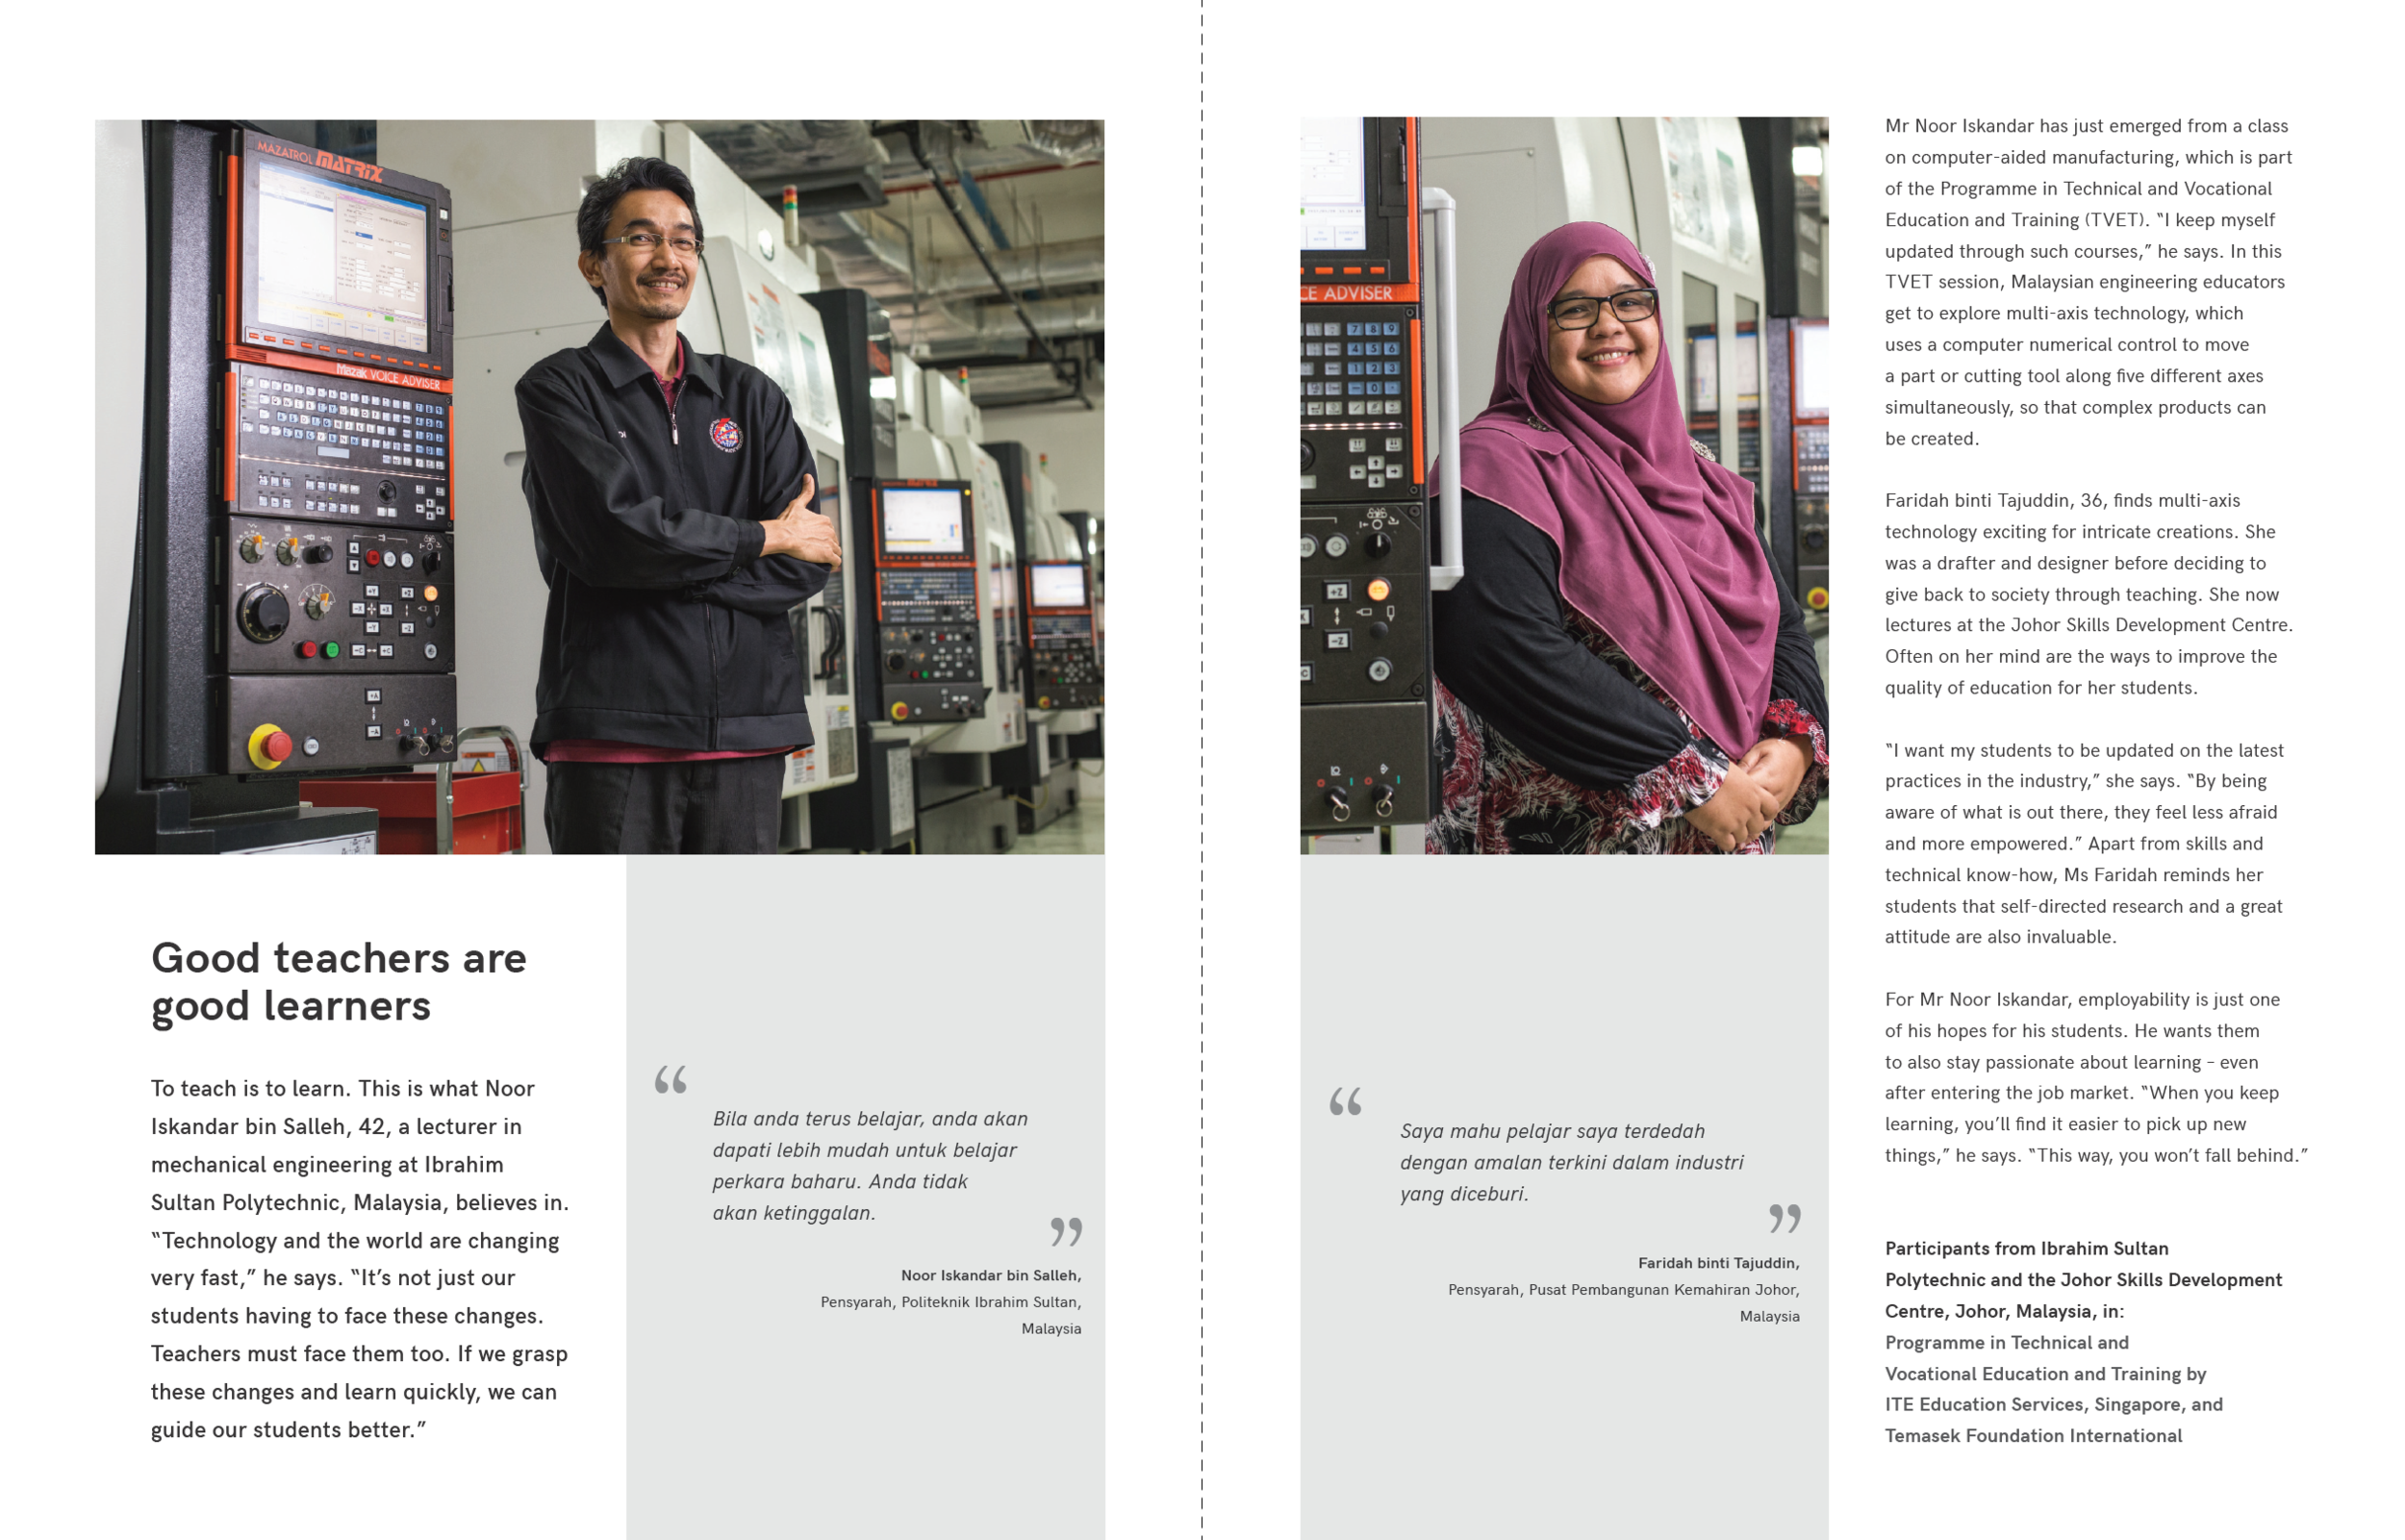 singapore-photographer-zainal-zainal-studio-temasek-foundation-international-09.png